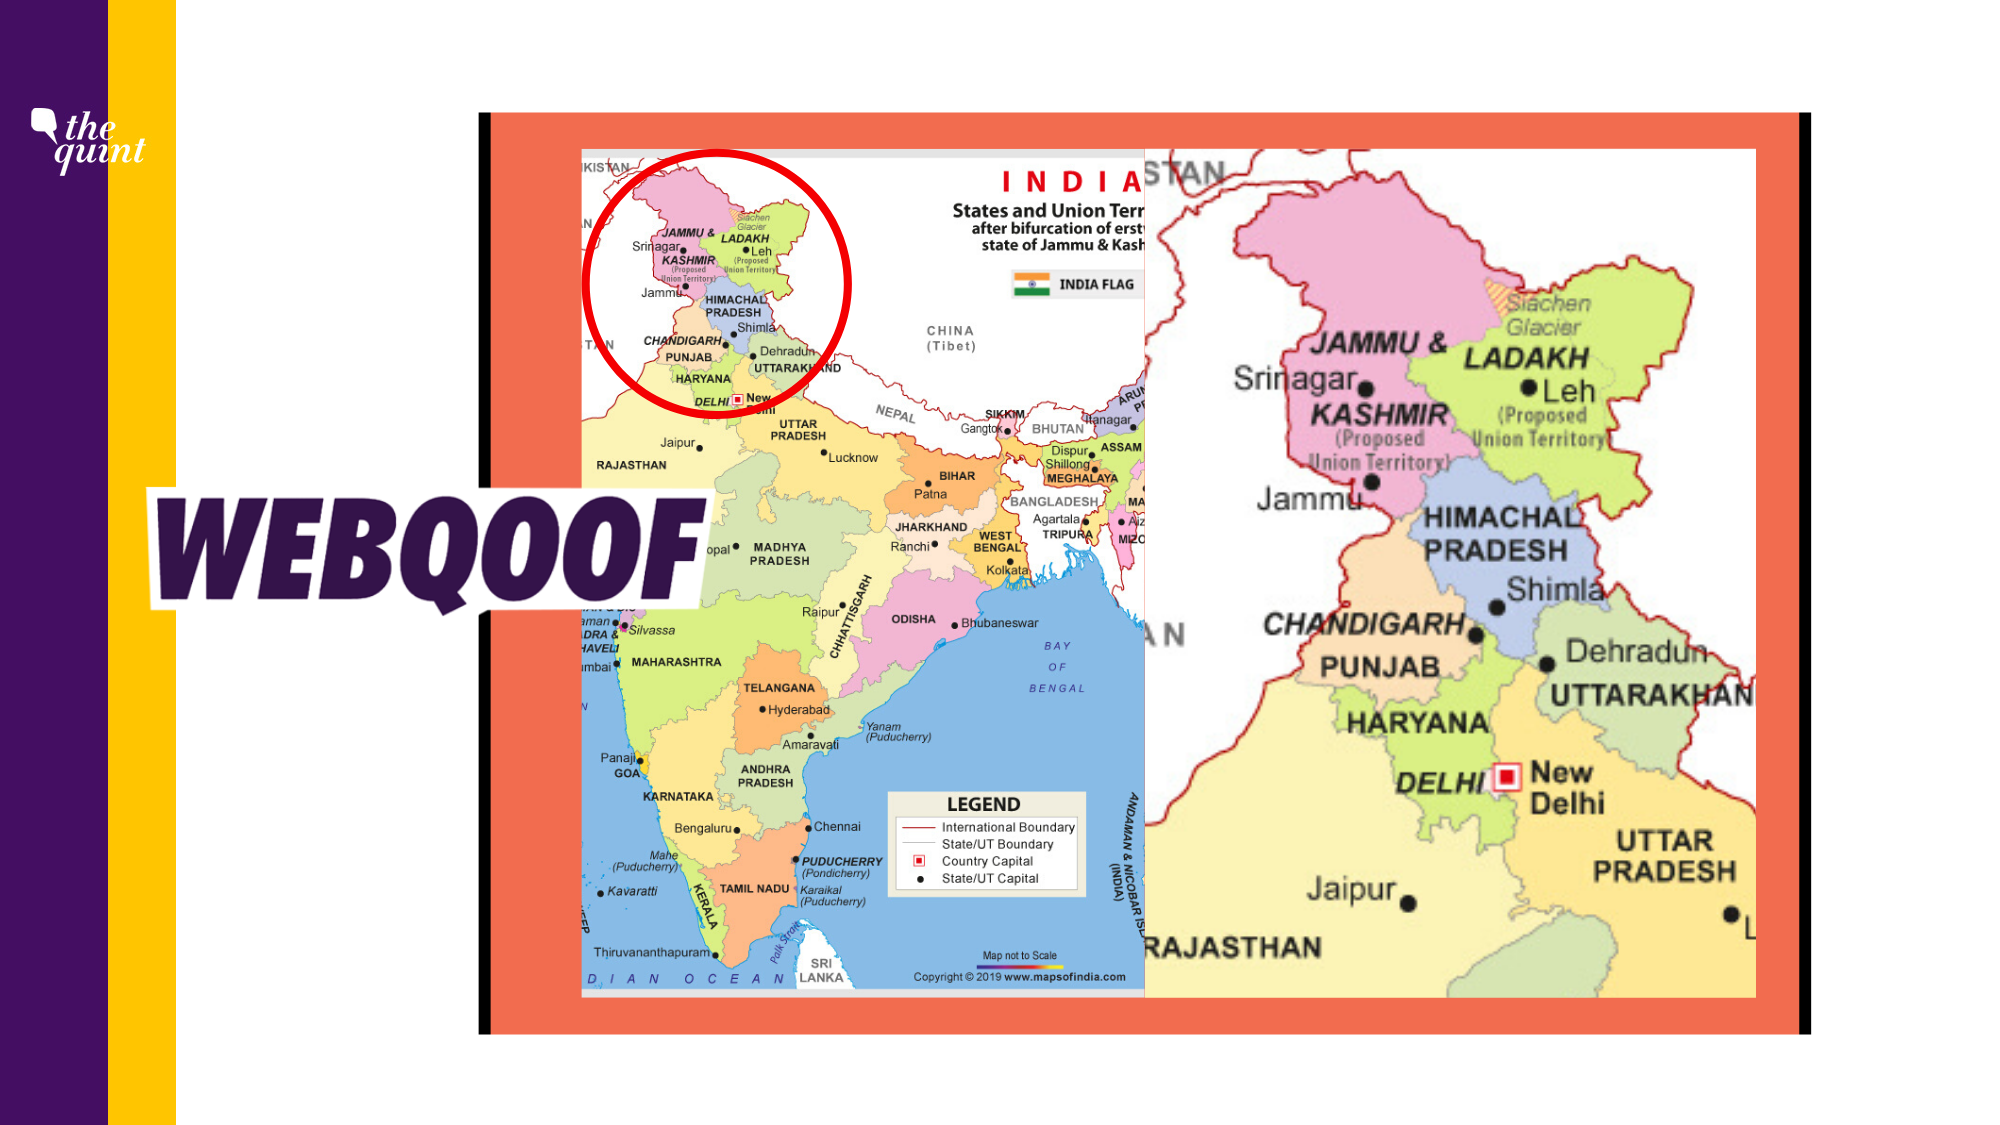 New Map of India Fact Check: Viral Photo of Map of India ... I Need A Map Of India on i need an eraser, i need sunscreen, i need an umbrella, i need text, i need an essay, i need lunch, i need address, i need phone numbers, i need camera, i need water, i need an id, i need transportation, us postal code map, i need contacts, bank of america map, i need fire, i need history, i need hours, i need some money, i need directions,